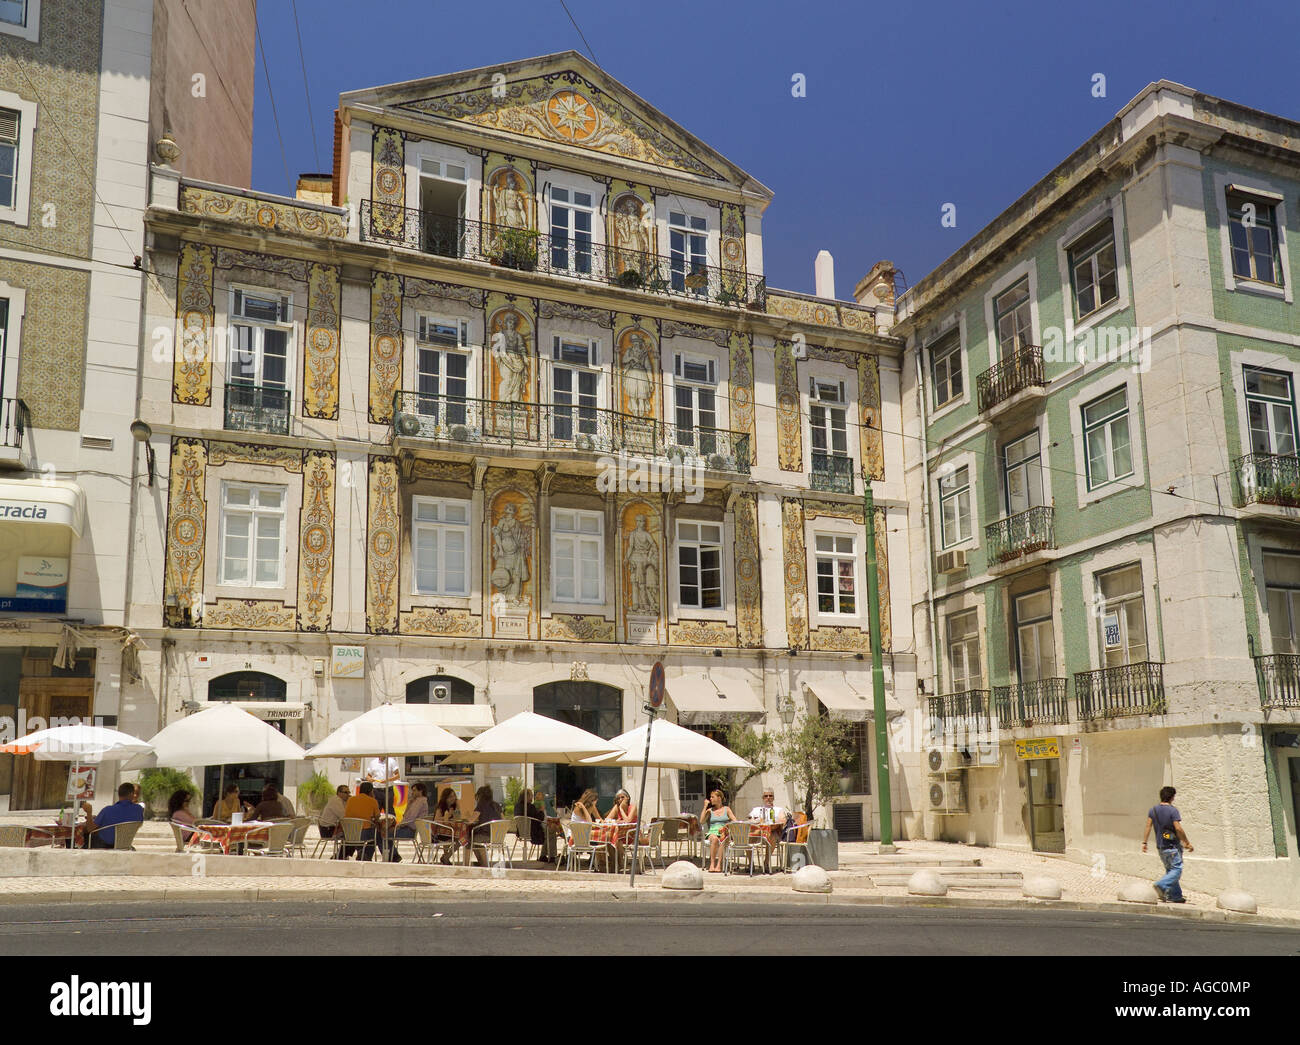 Chiado District of Lisbon, a  Street Scene With Restaurant - Stock Image